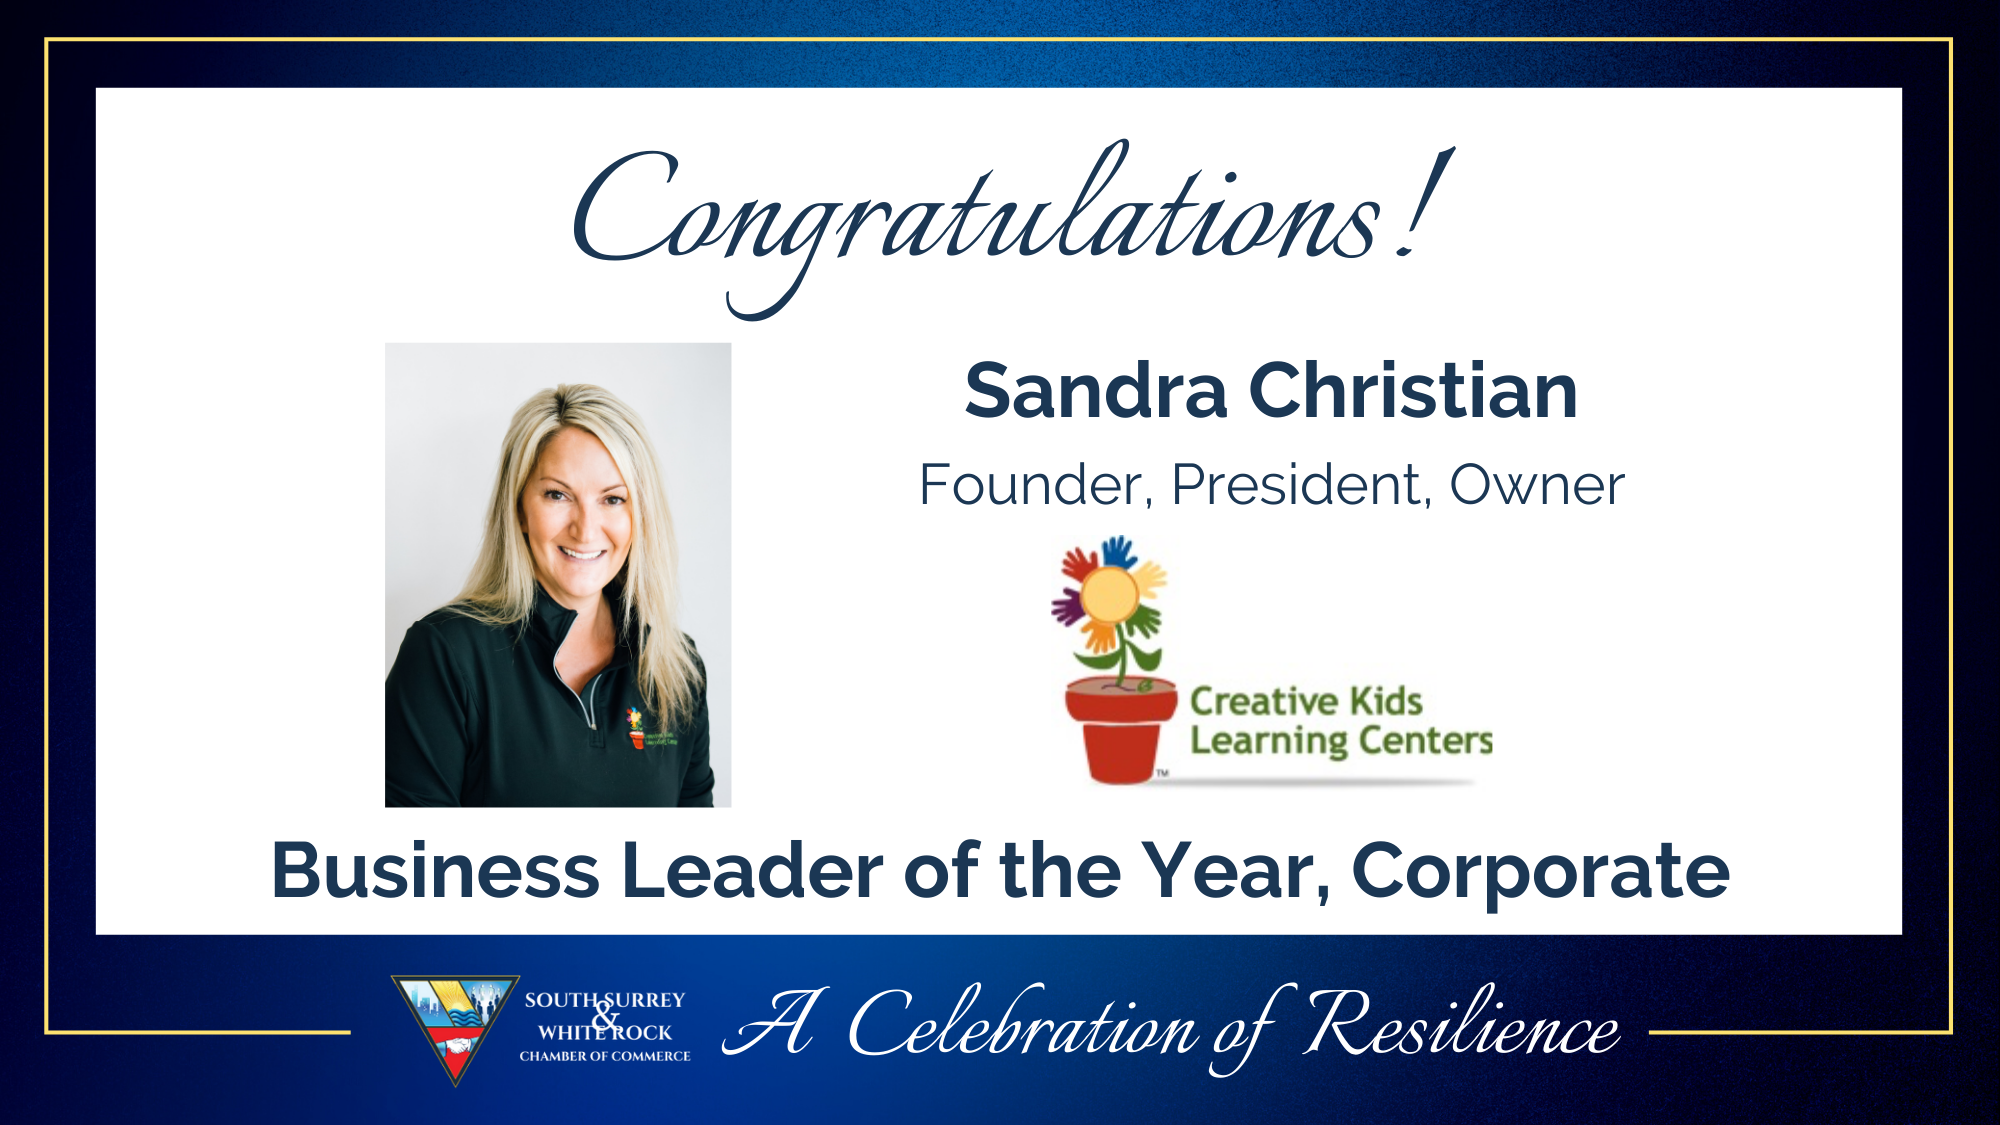 Congratulations-Business-Leader-Corporate.png